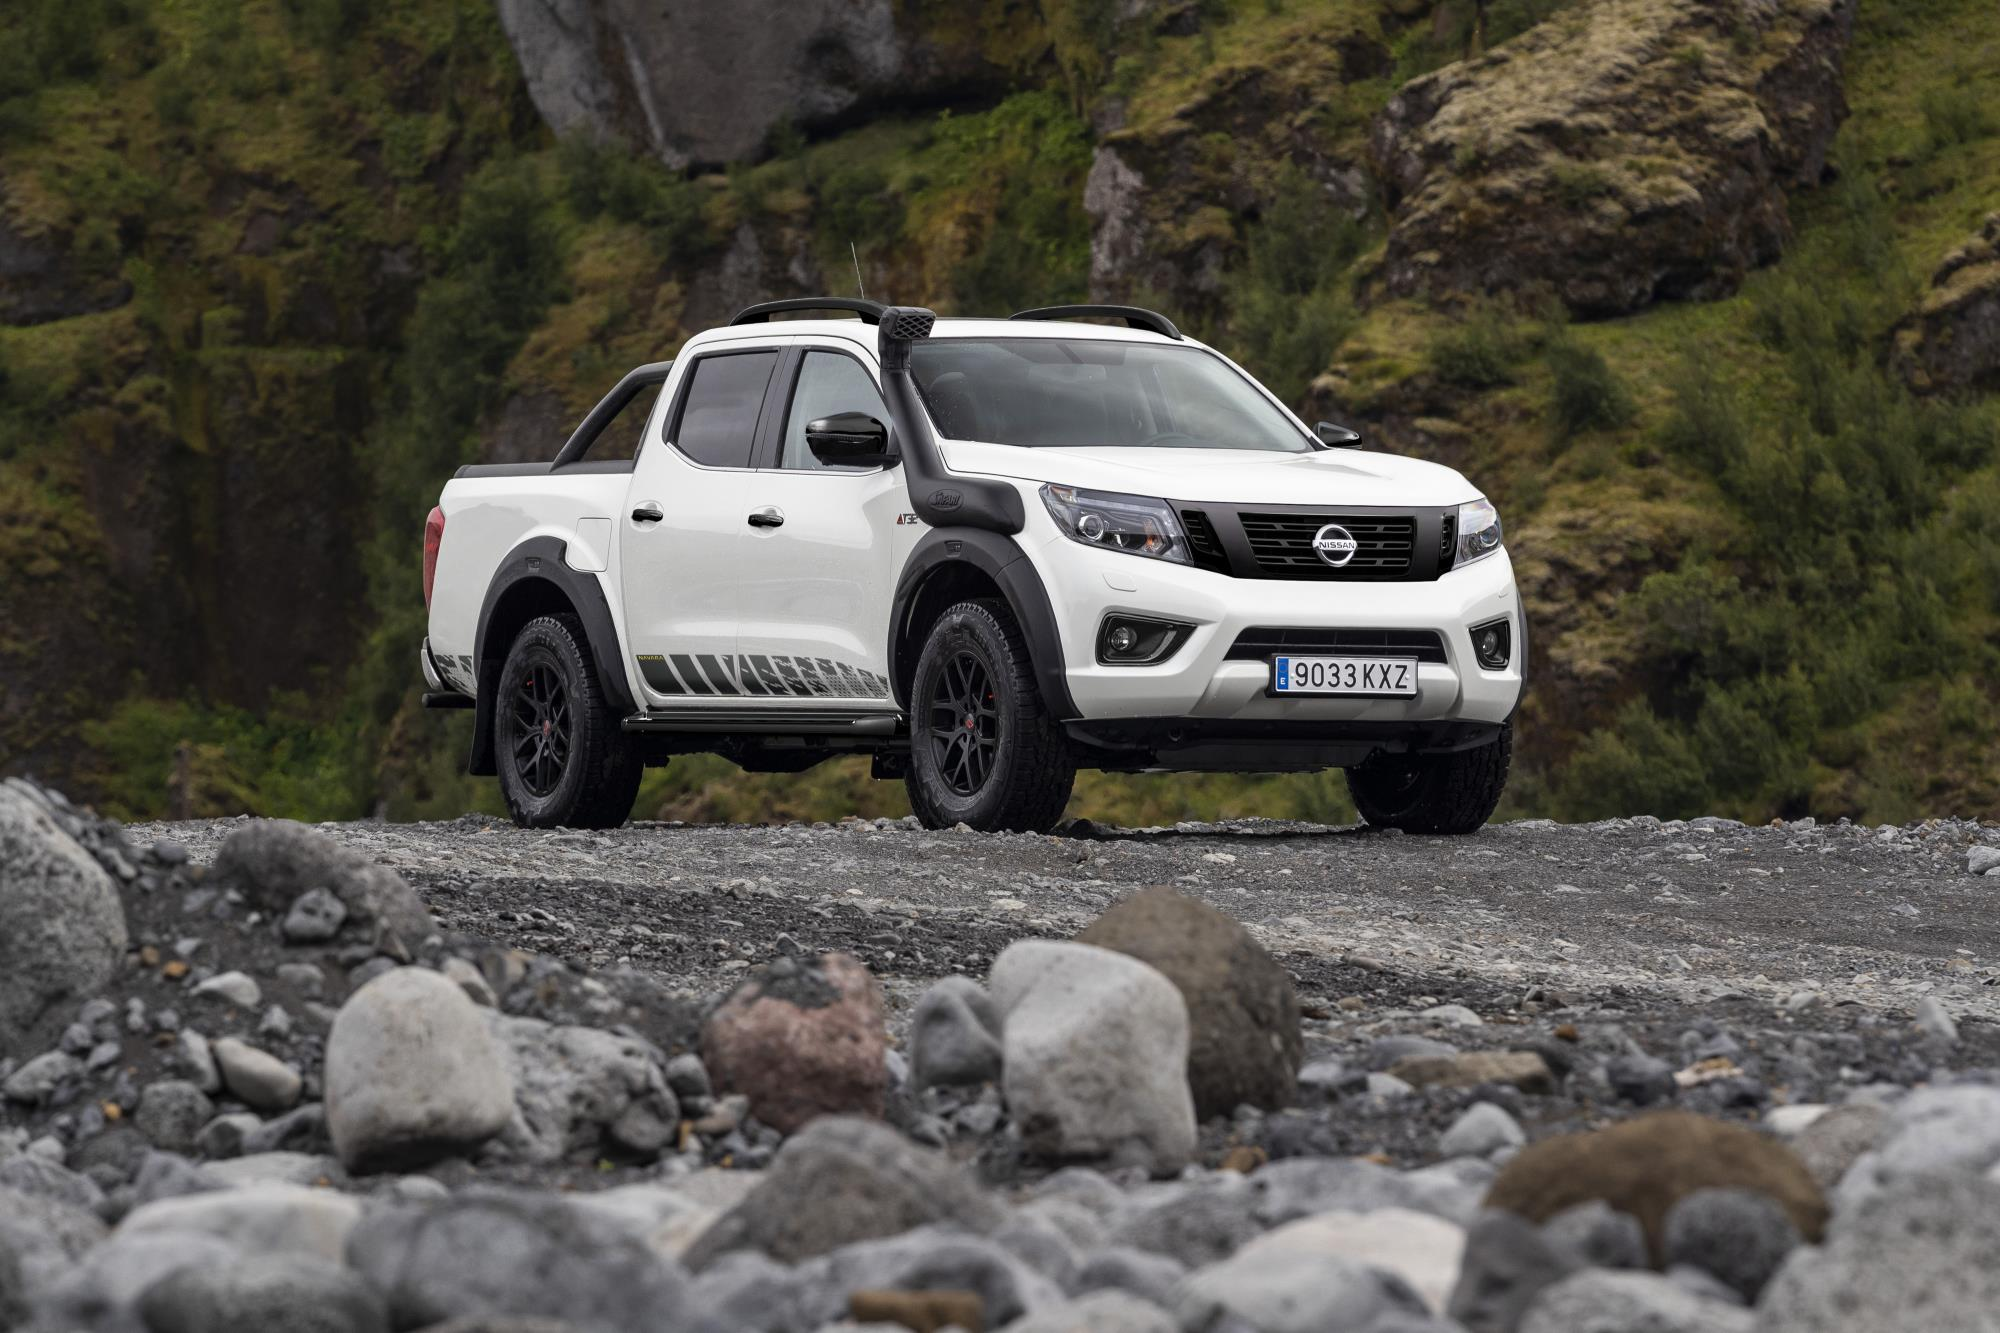 Nissan's new Navara AT32 is unveiled